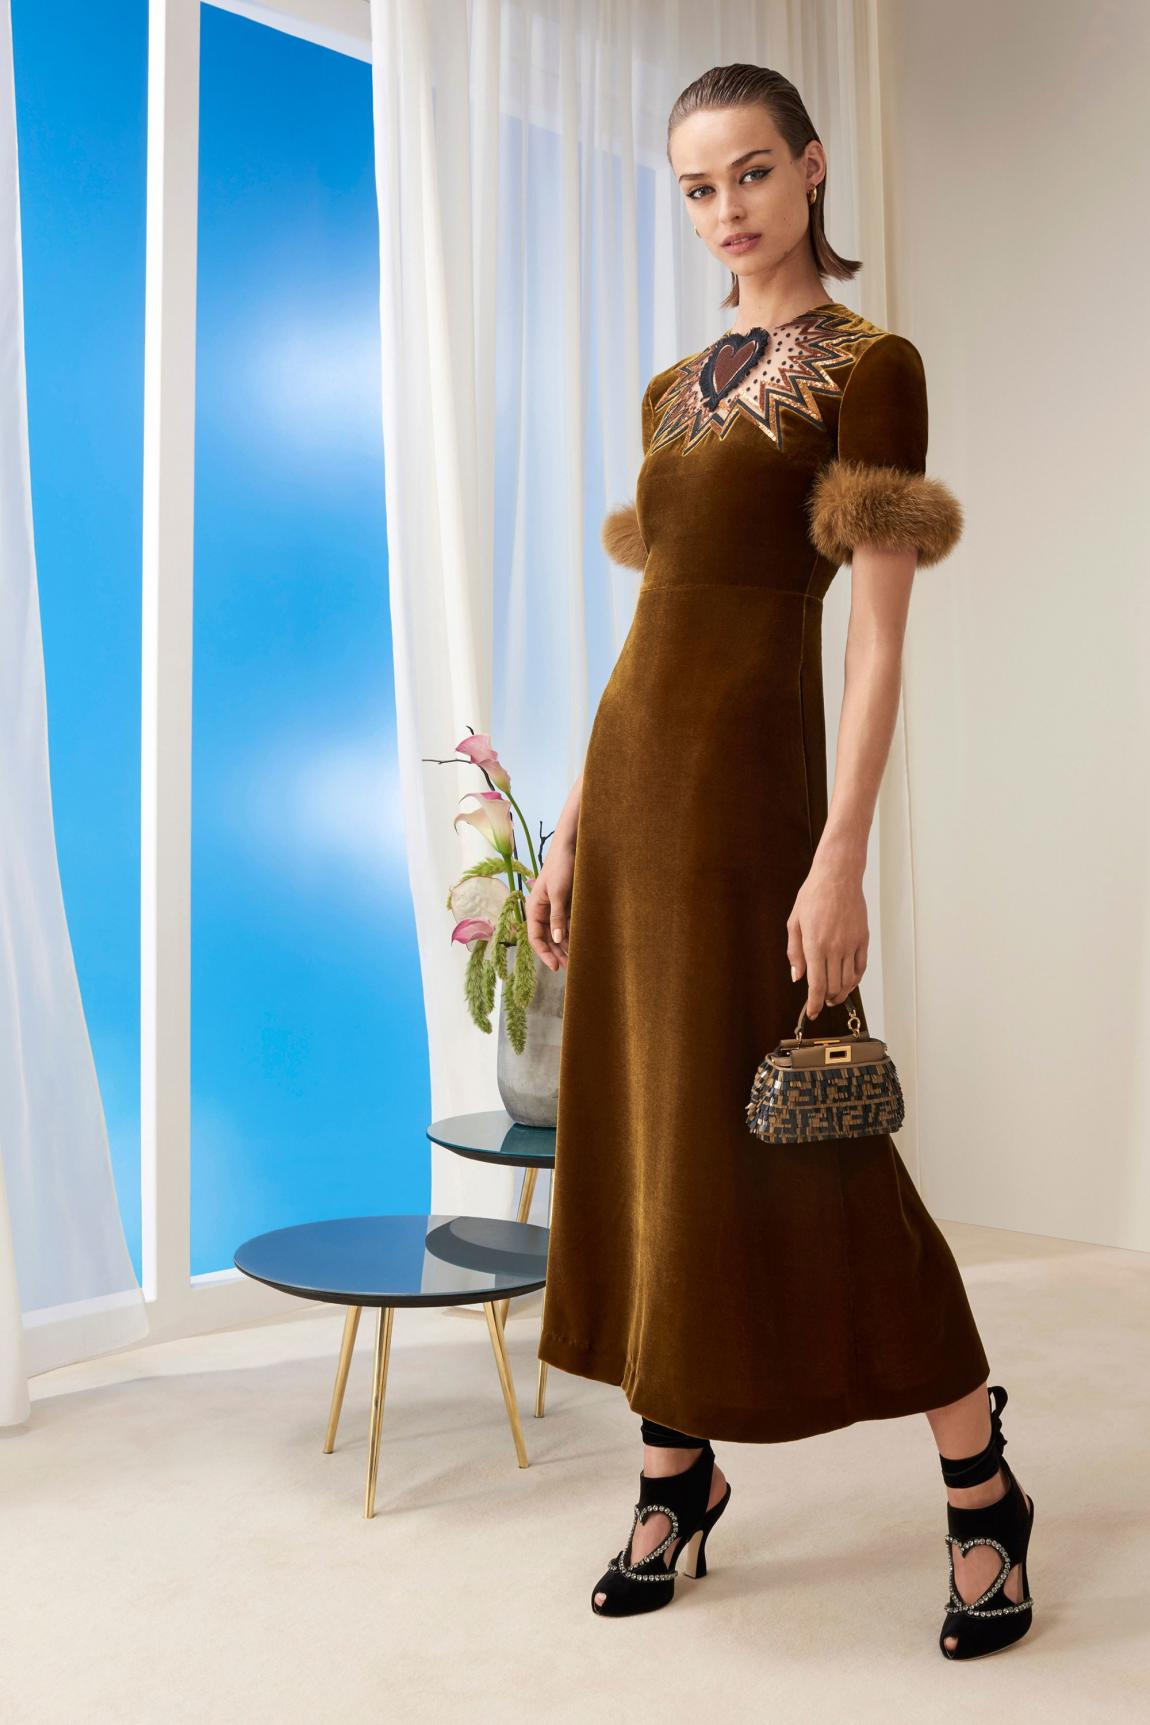 Pre-Fall Fendi collection as though created for Valentine's Day